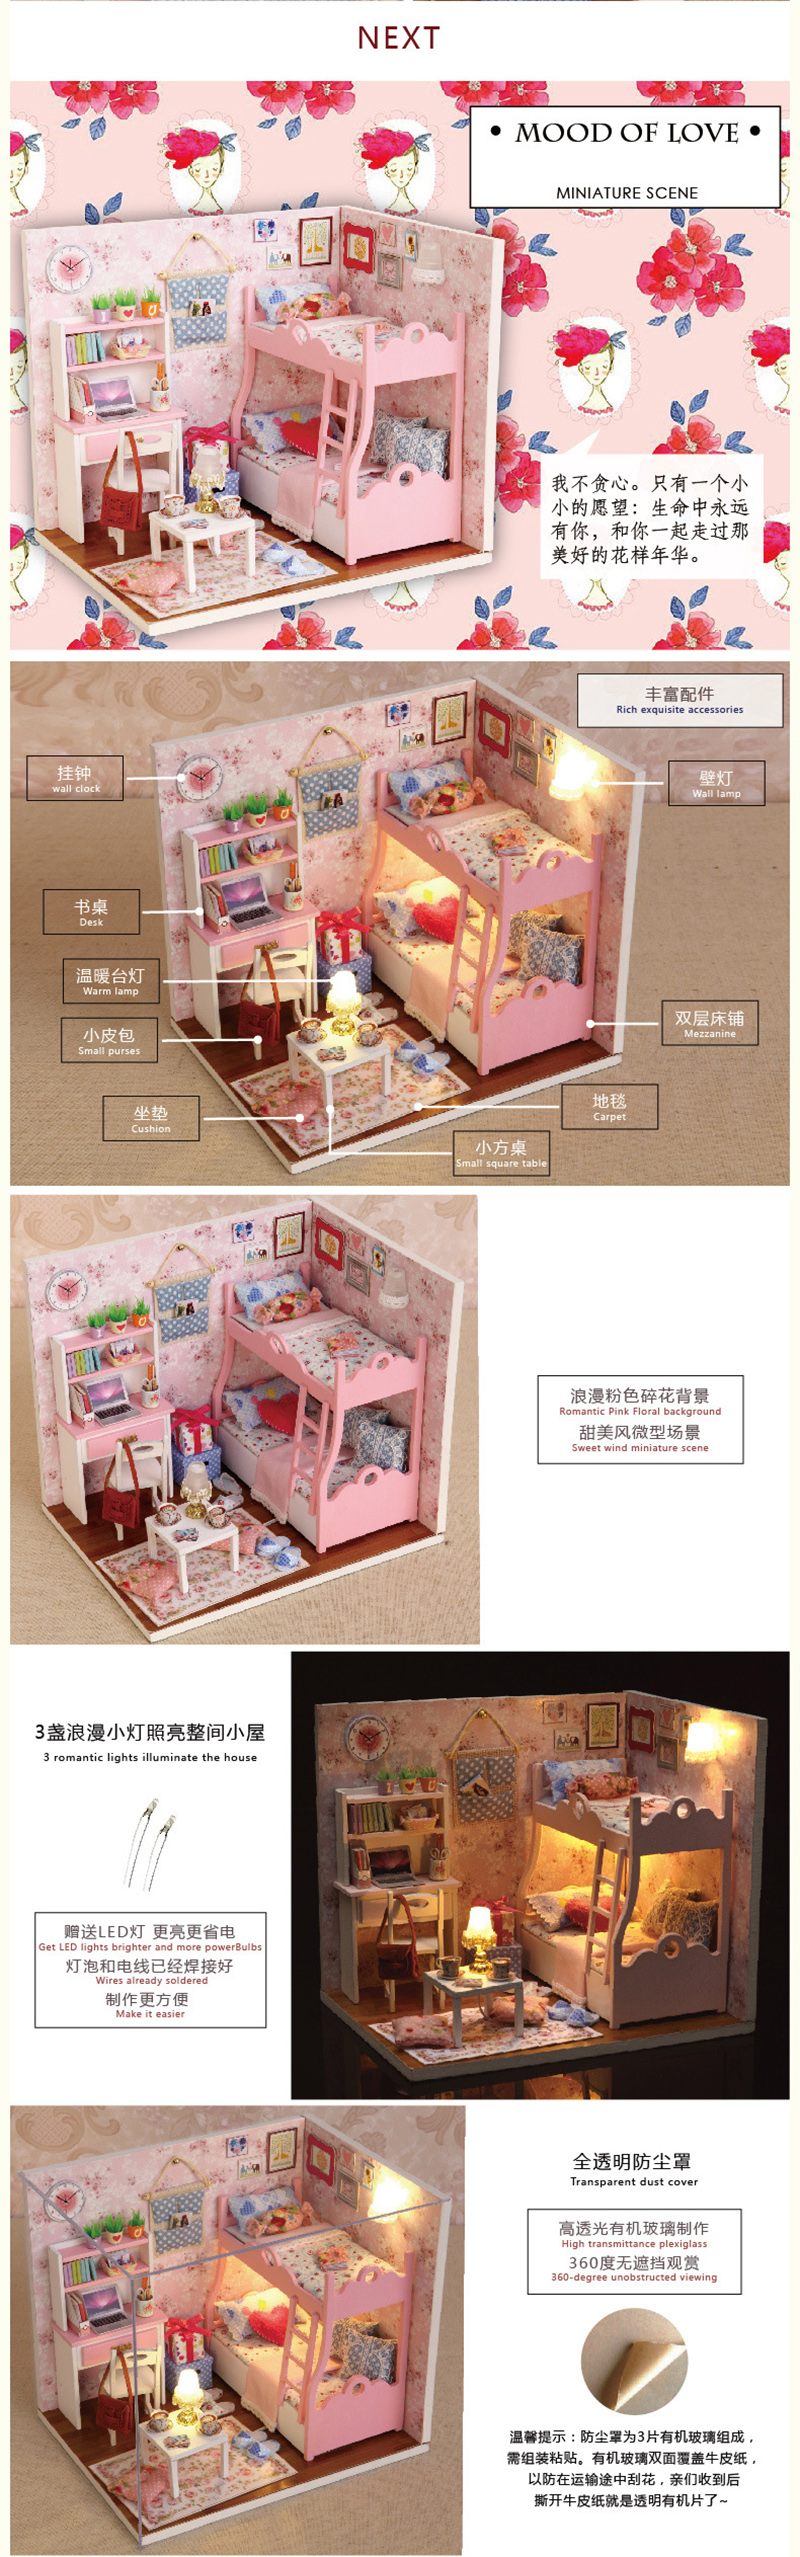 Diy doll house pattern time girl manual creative model manually building toy for her birthday 9